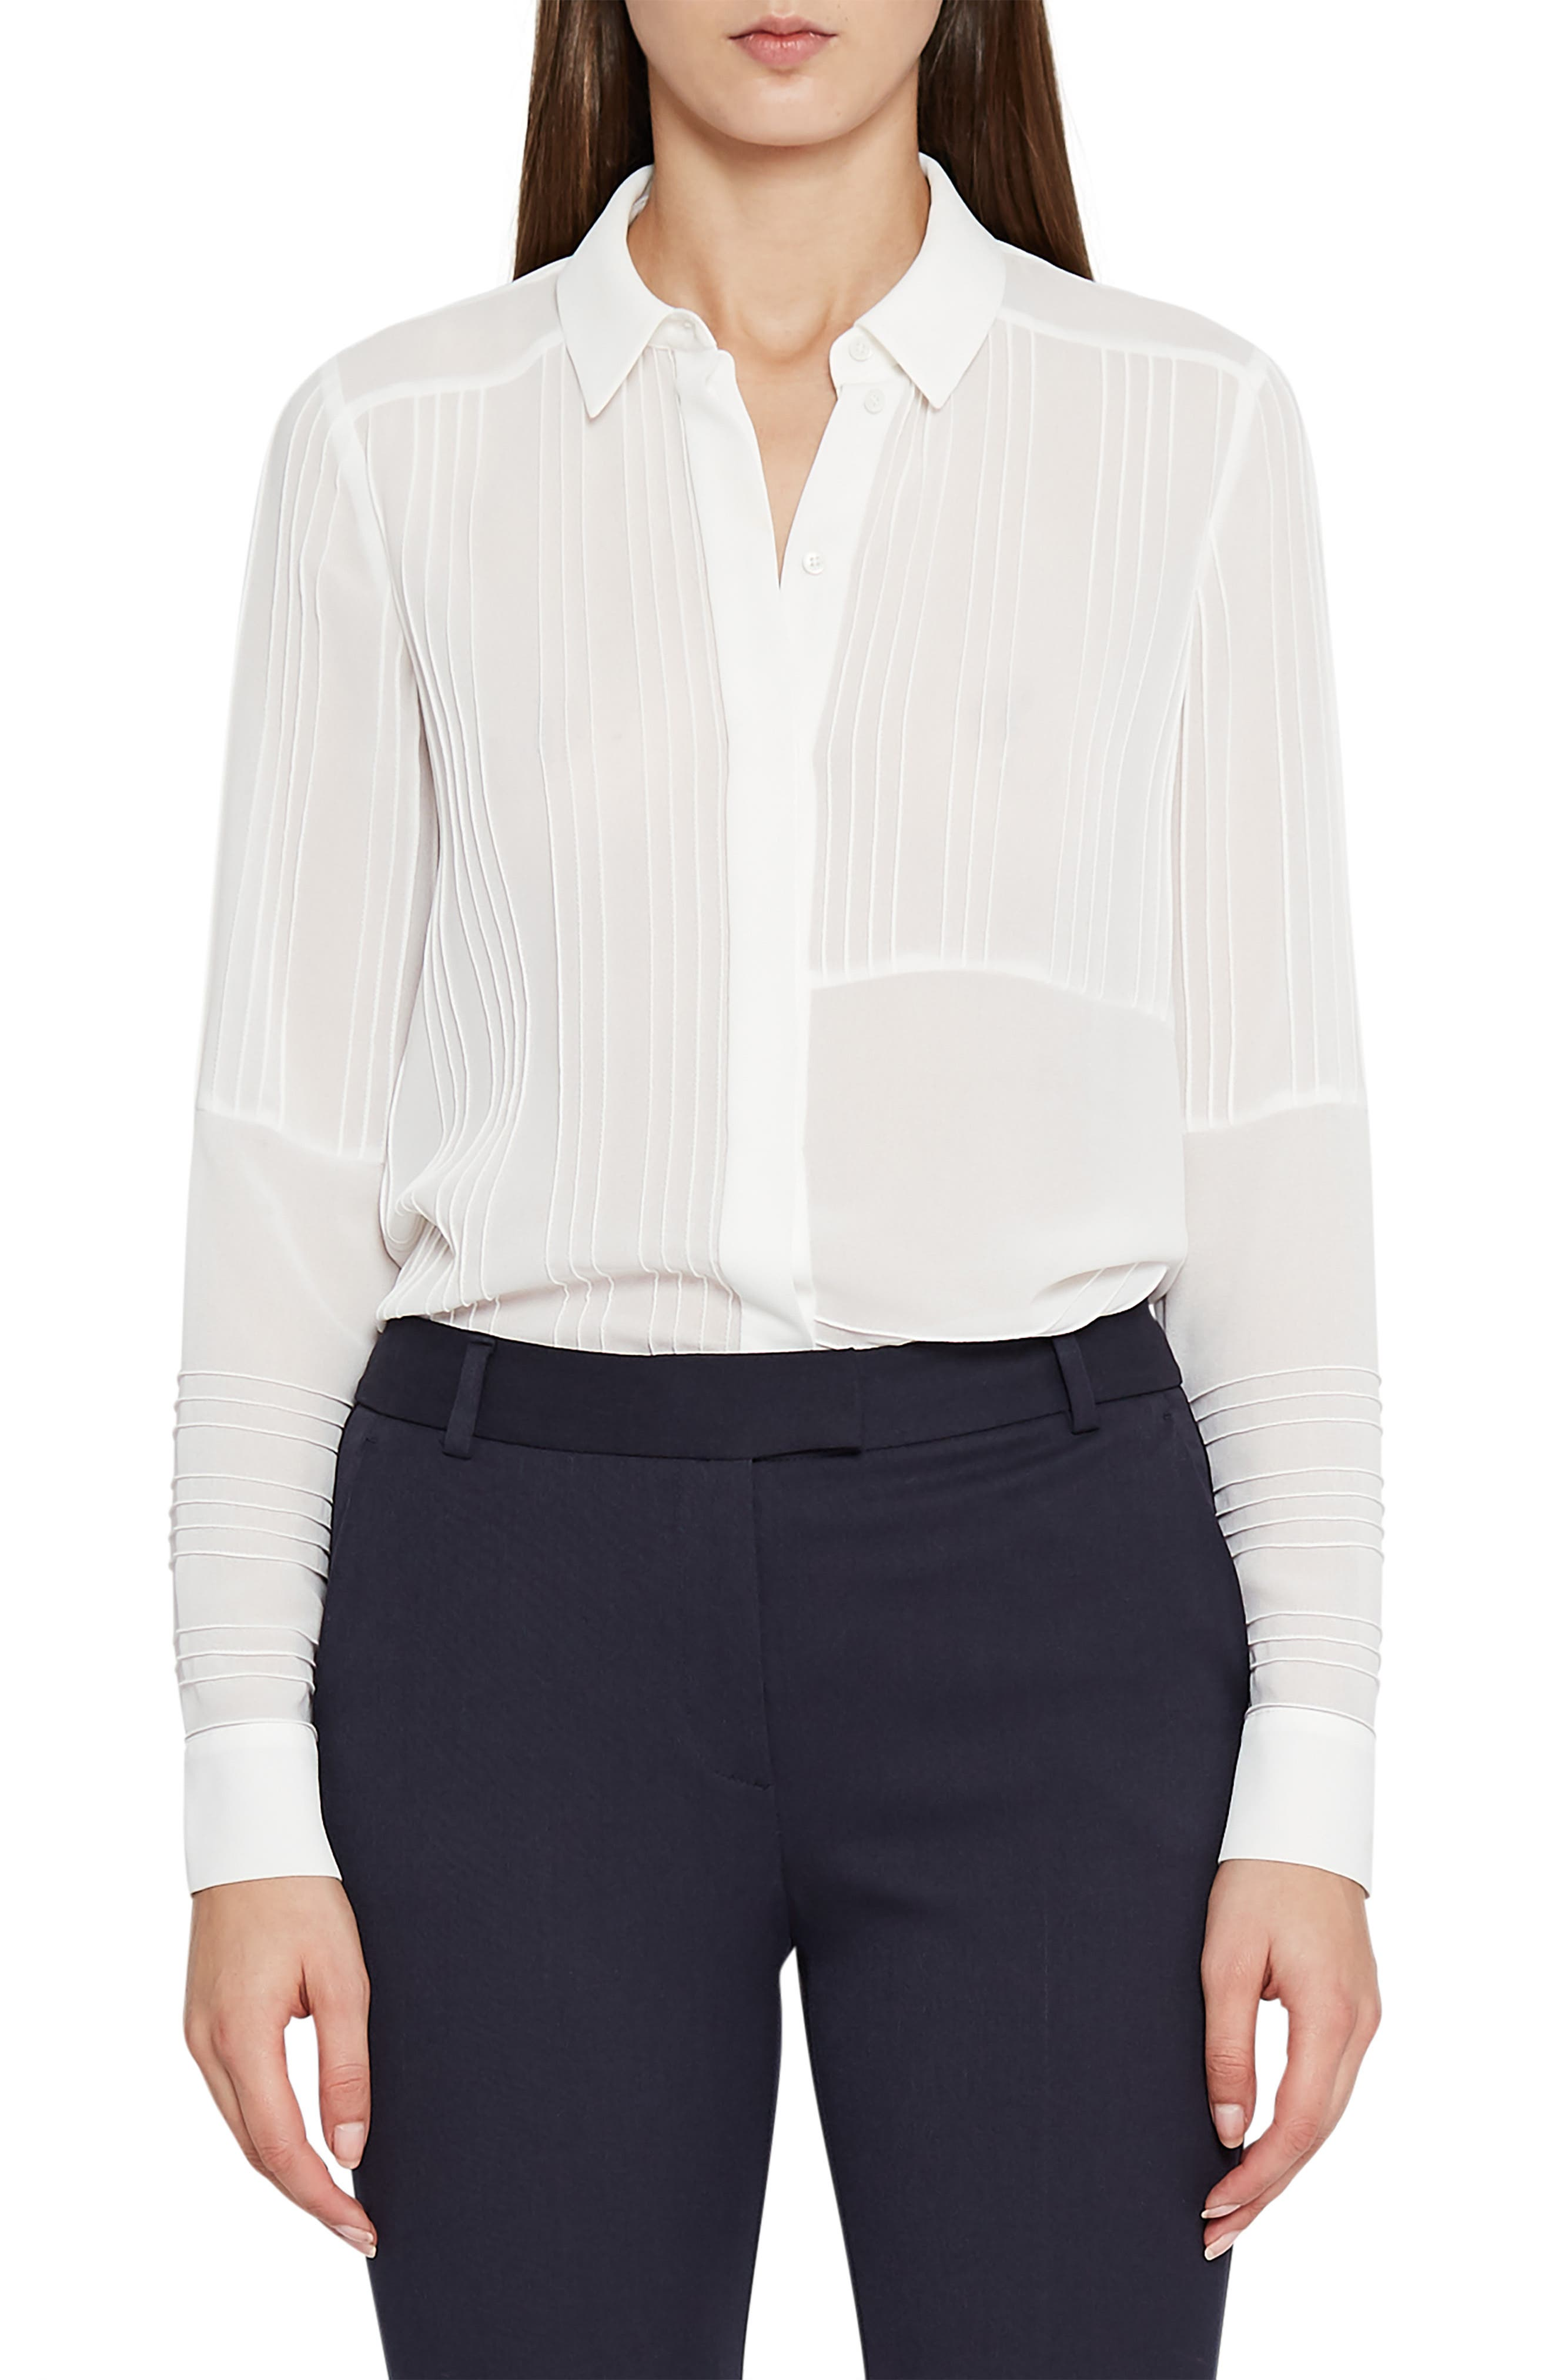 Lulu Pintuck Blouse,                         Main,                         color, WHITE